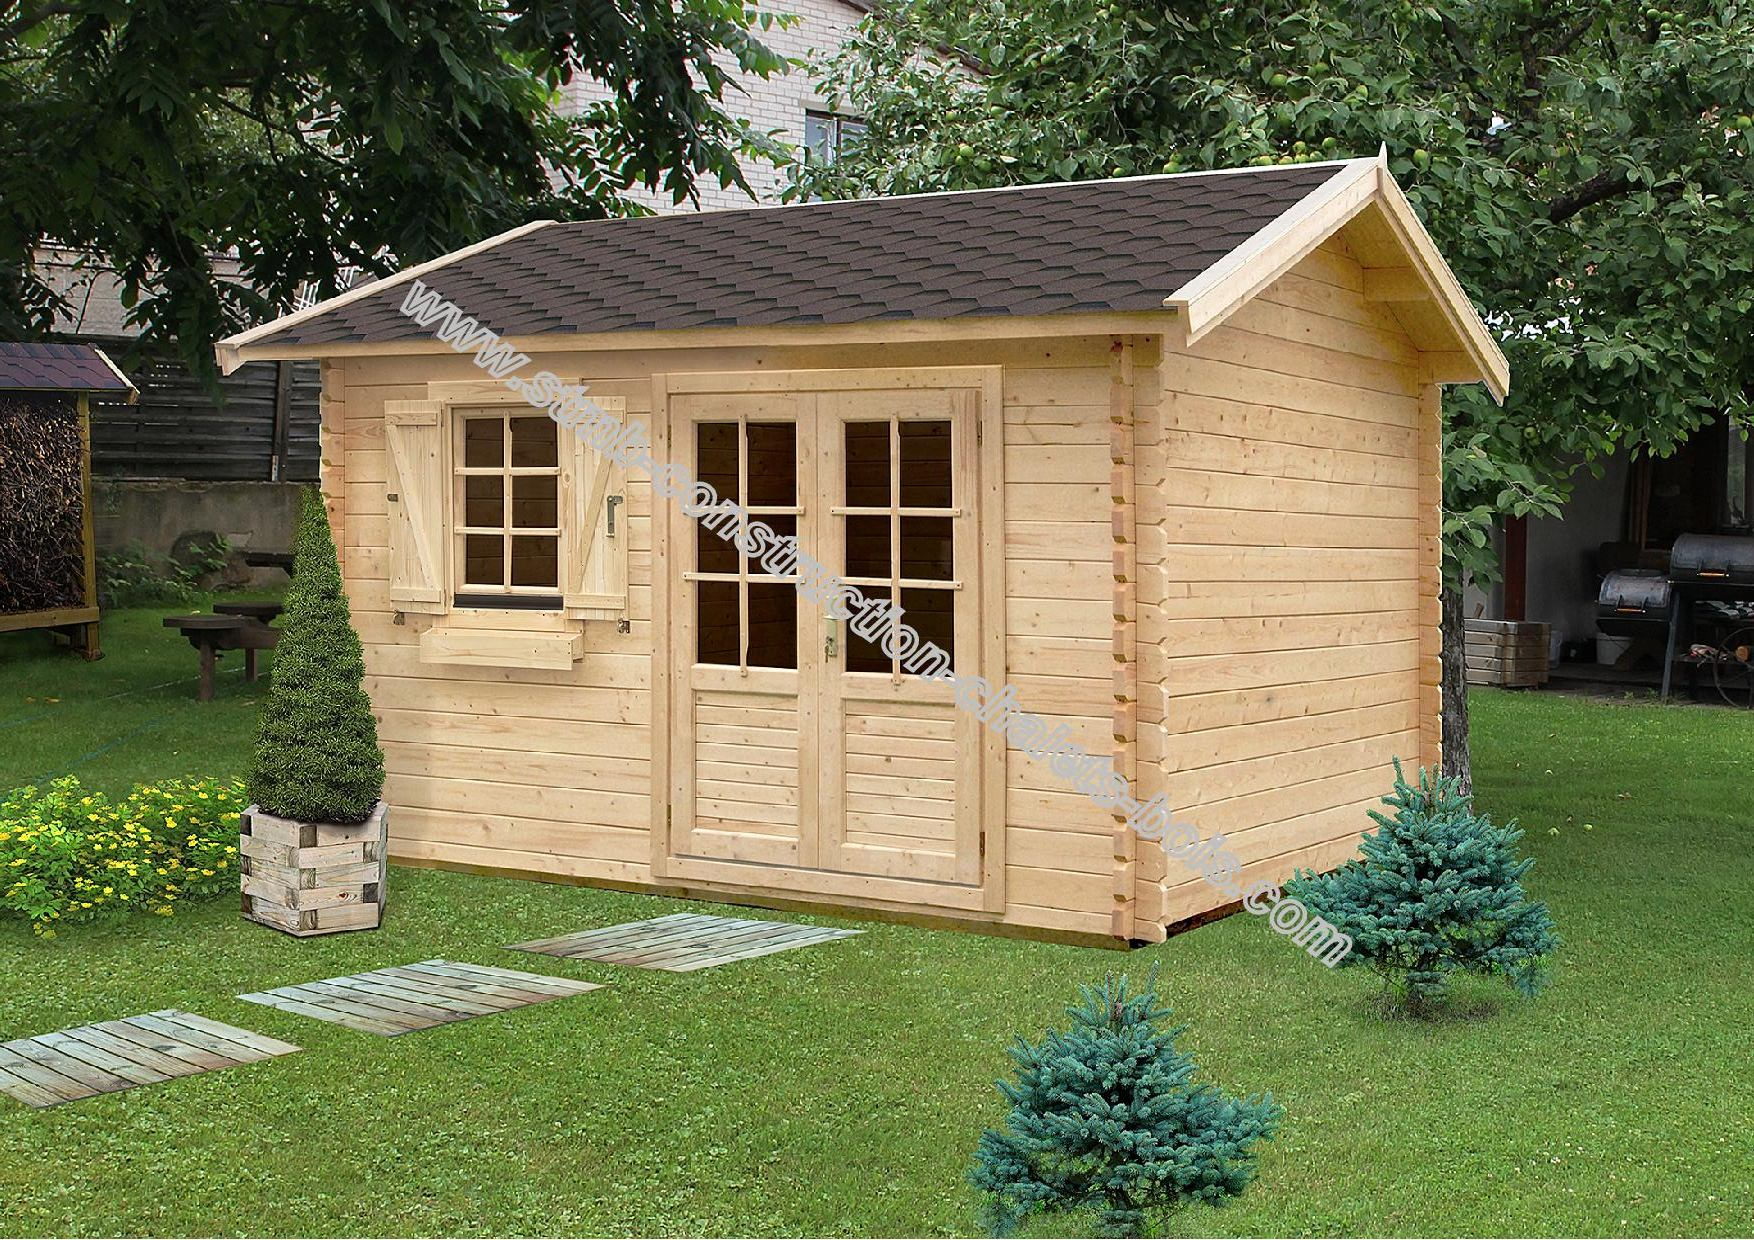 Kit chalet de jardin palmier m2 int rieur for Chalet prix construction